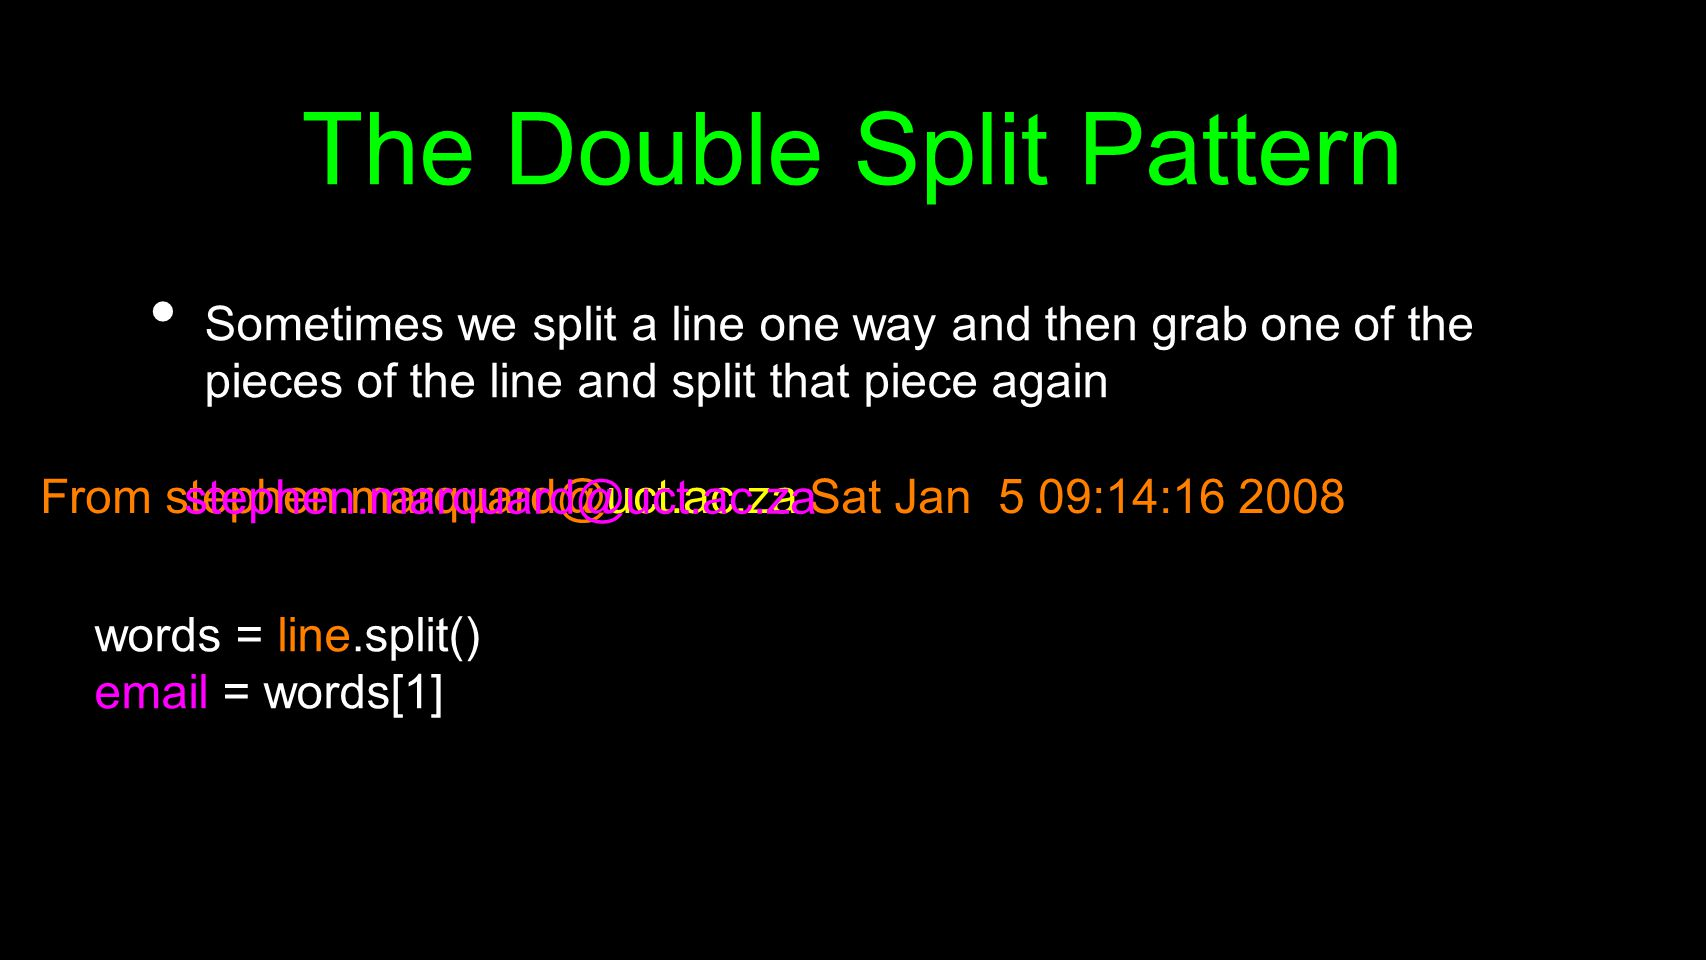 From stephen.marquard@uct.ac.za Sat Jan 5 09:14:16 2008 The Double Split Pattern Sometimes we split a line one way and then grab one of the pieces of